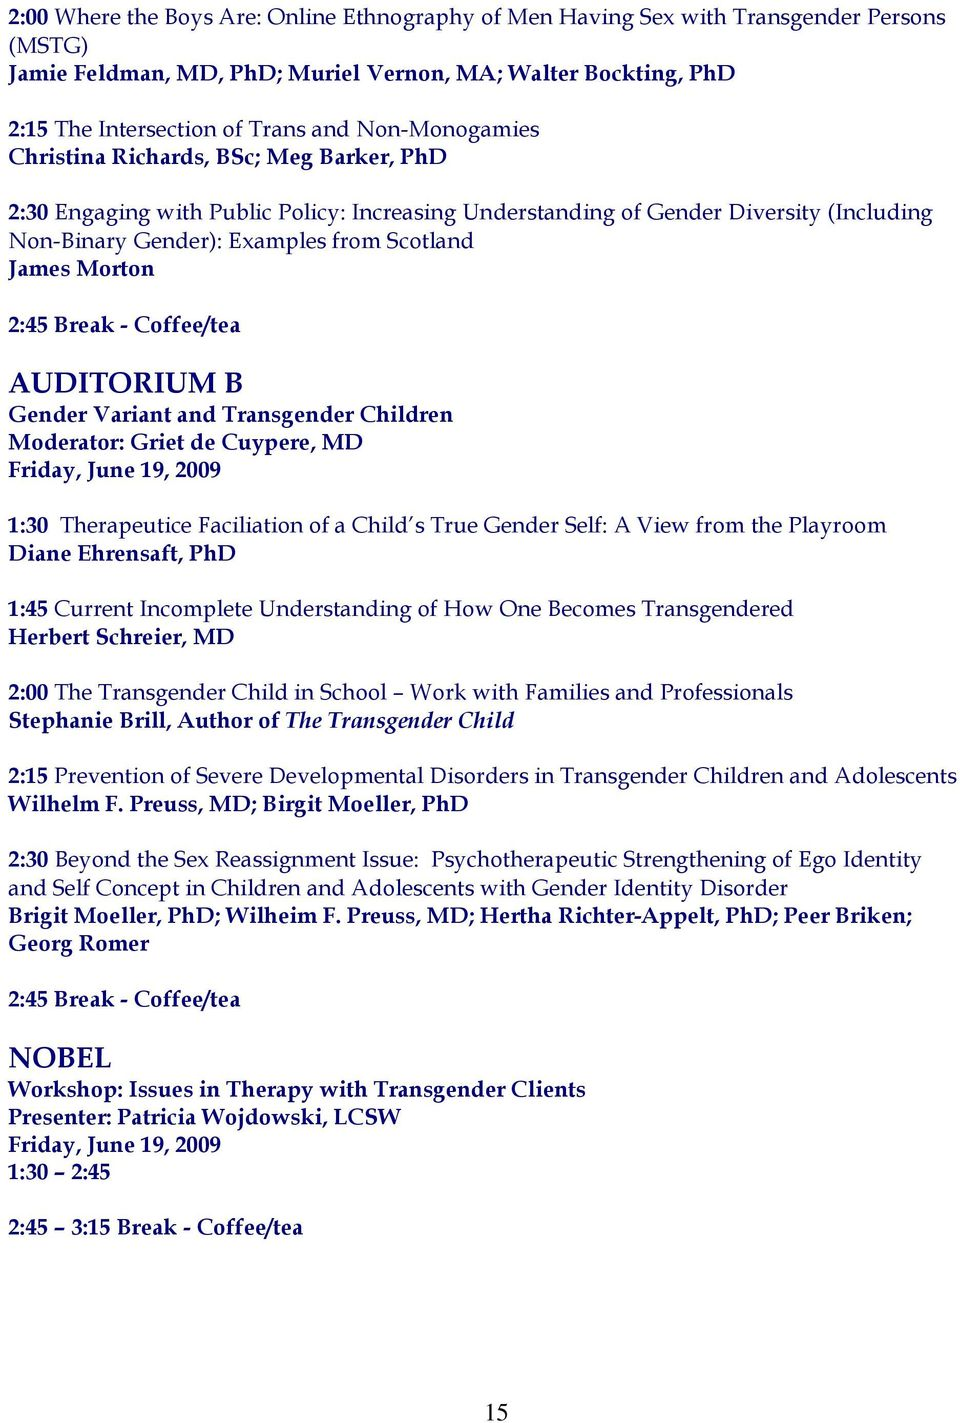 Morton 2:45 Break - Coffee/tea AUDITORIUM B Gender Variant and Transgender Children Moderator: Griet de Cuypere, MD 1:30 Therapeutice Faciliation of a Child s True Gender Self: A View from the